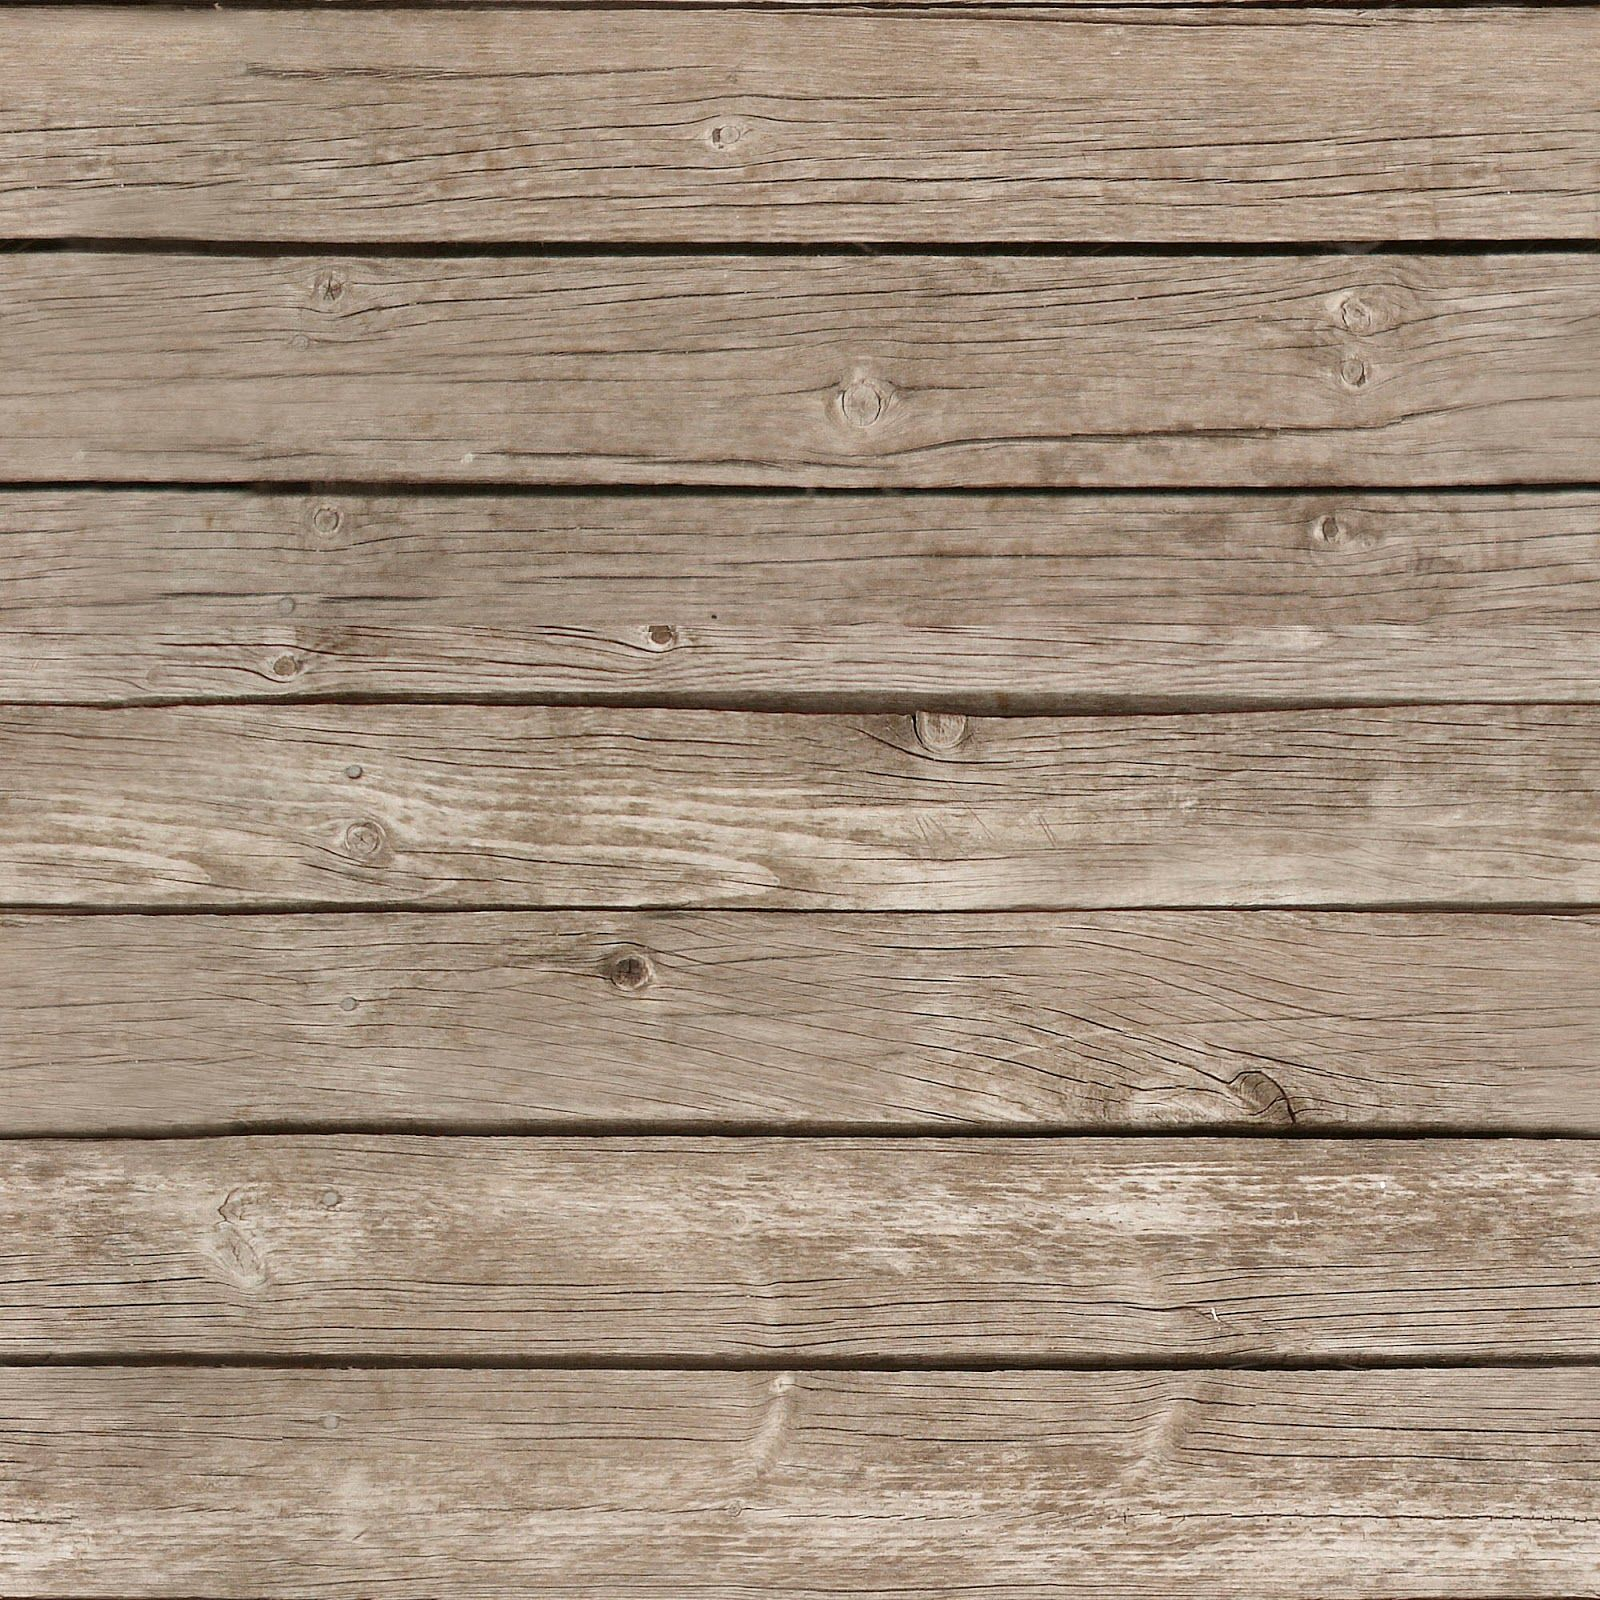 Seamless wood fine sabbia texture texturise free seamless textures - Tileable Wood Planks Materials Pinned Onto Webinfusion Home